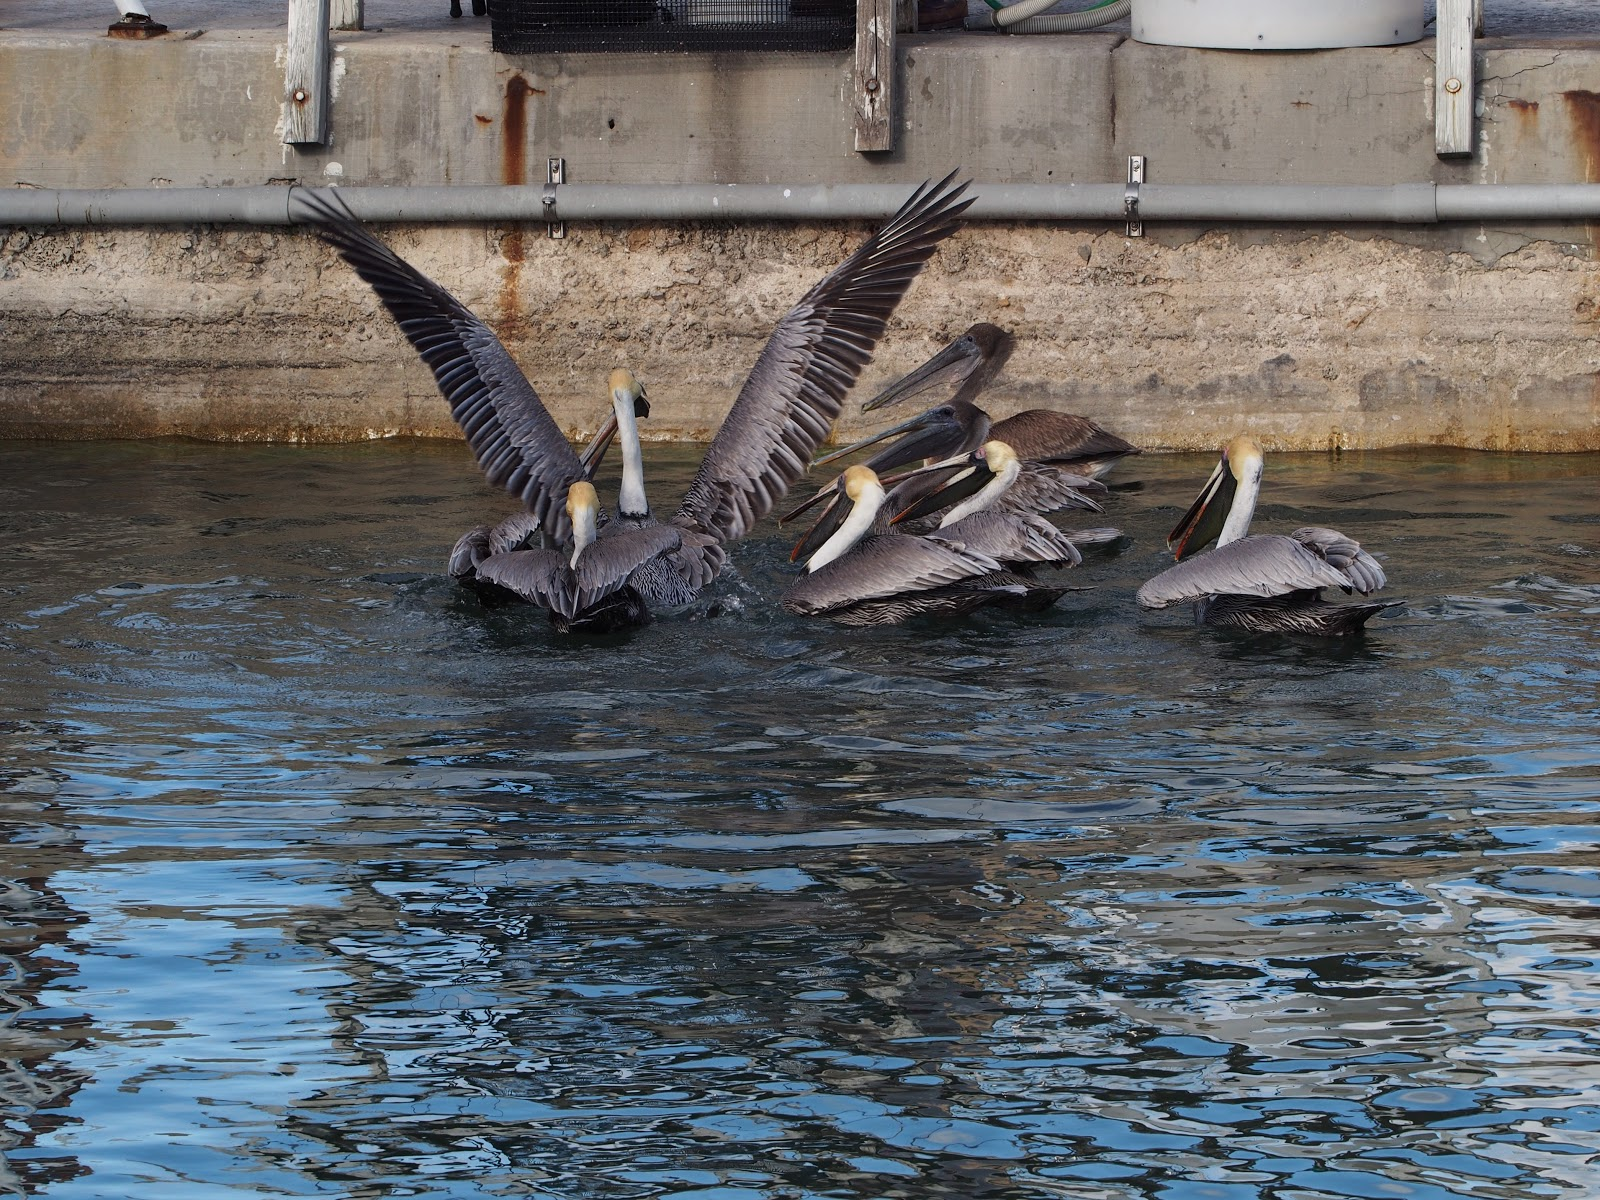 Beginning of a Pelican Scrum, #pelican #pelicans #keywest #florida 2014